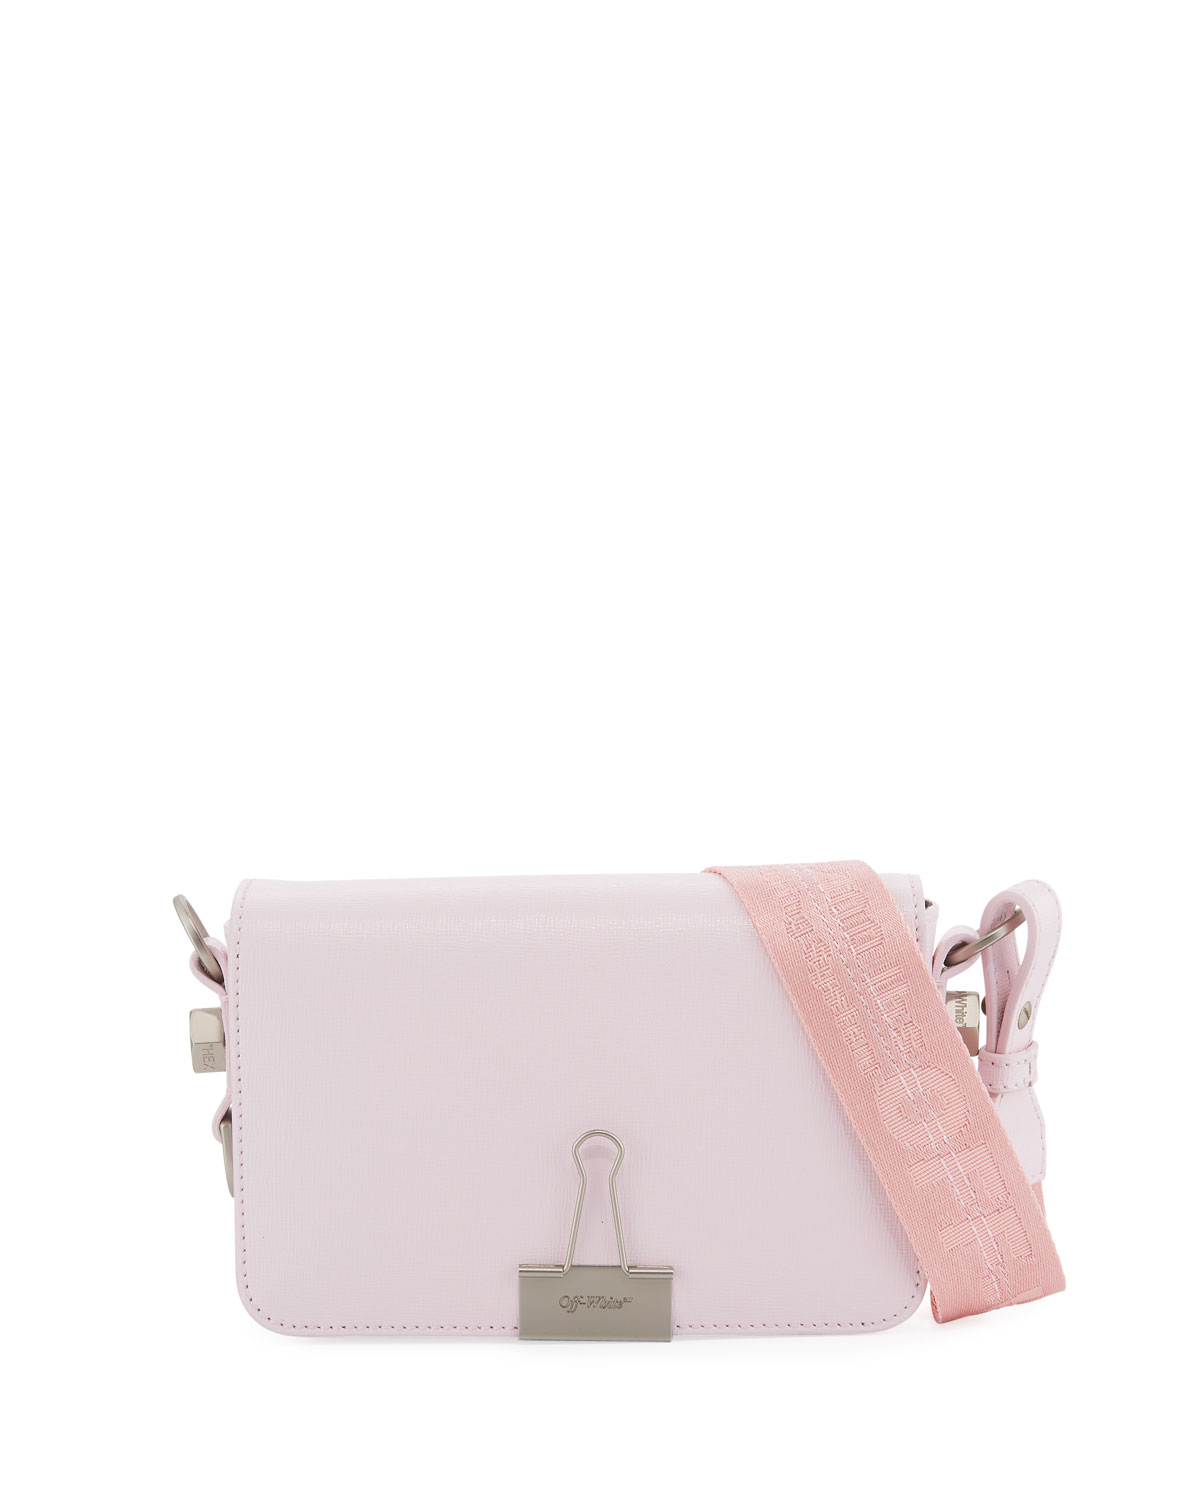 96a1153e Off-White Mini Leather Flap Bag with Binder Clip, Pink | Neiman Marcus